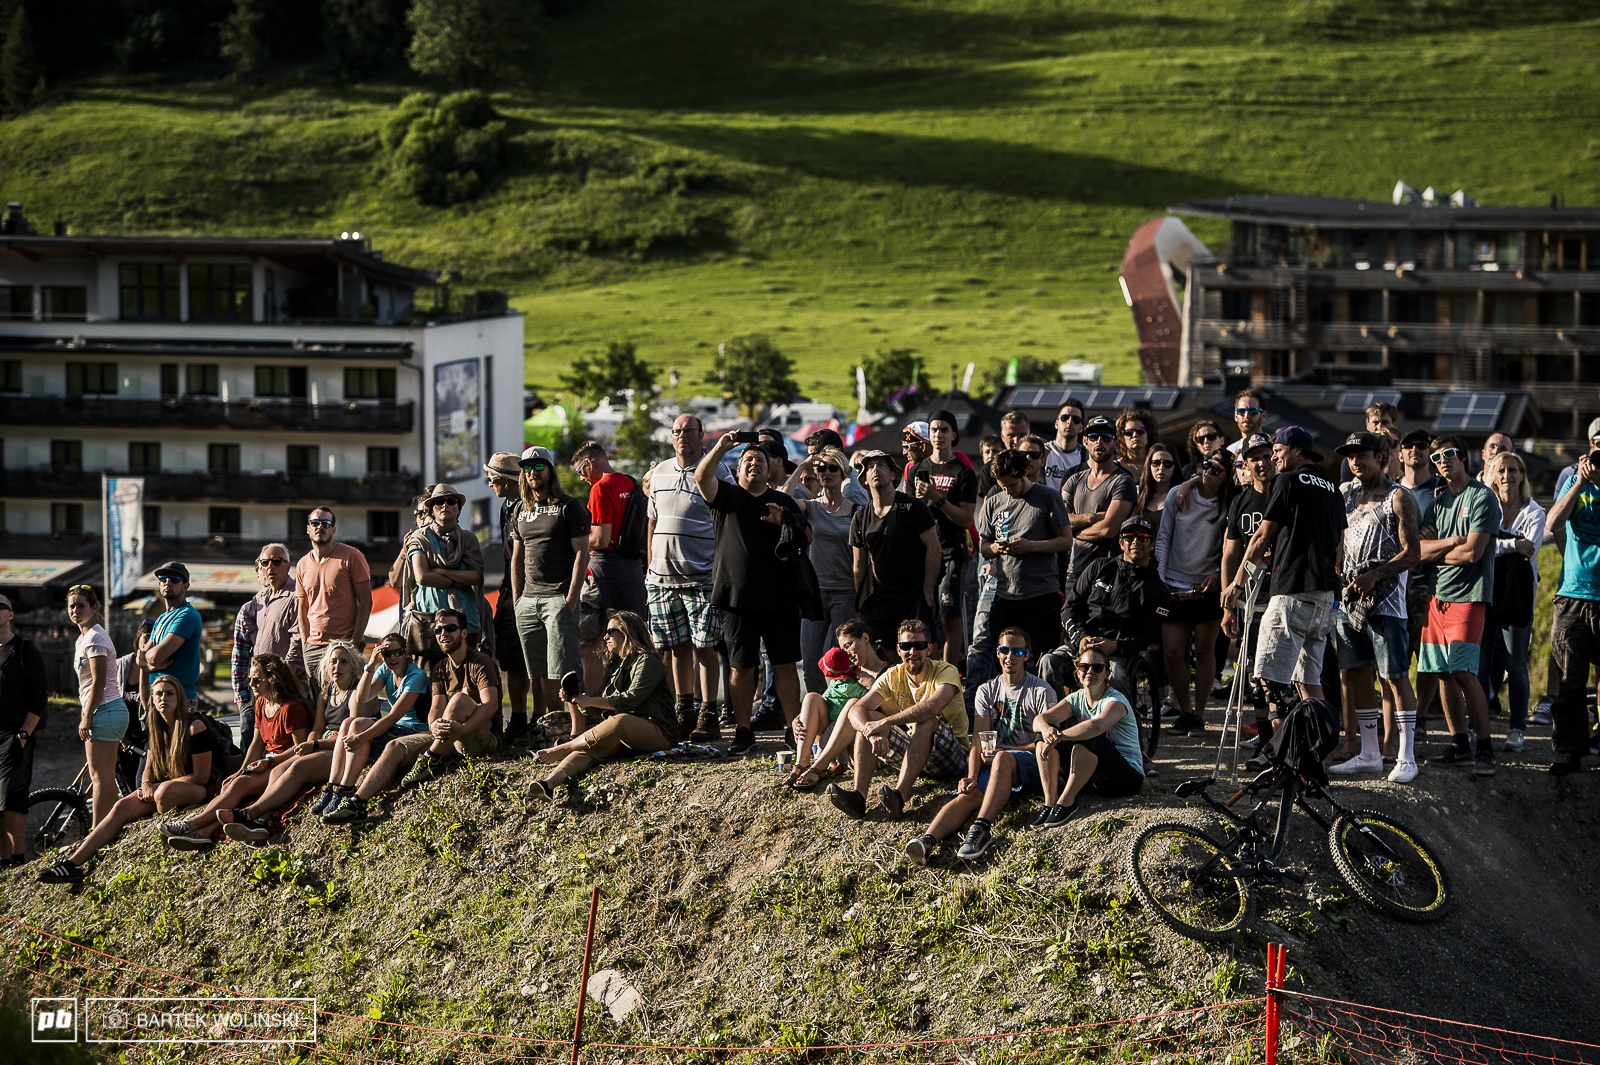 As always - Leogang s crowd is warming bikers while not giving a damn about their wheelsizes.